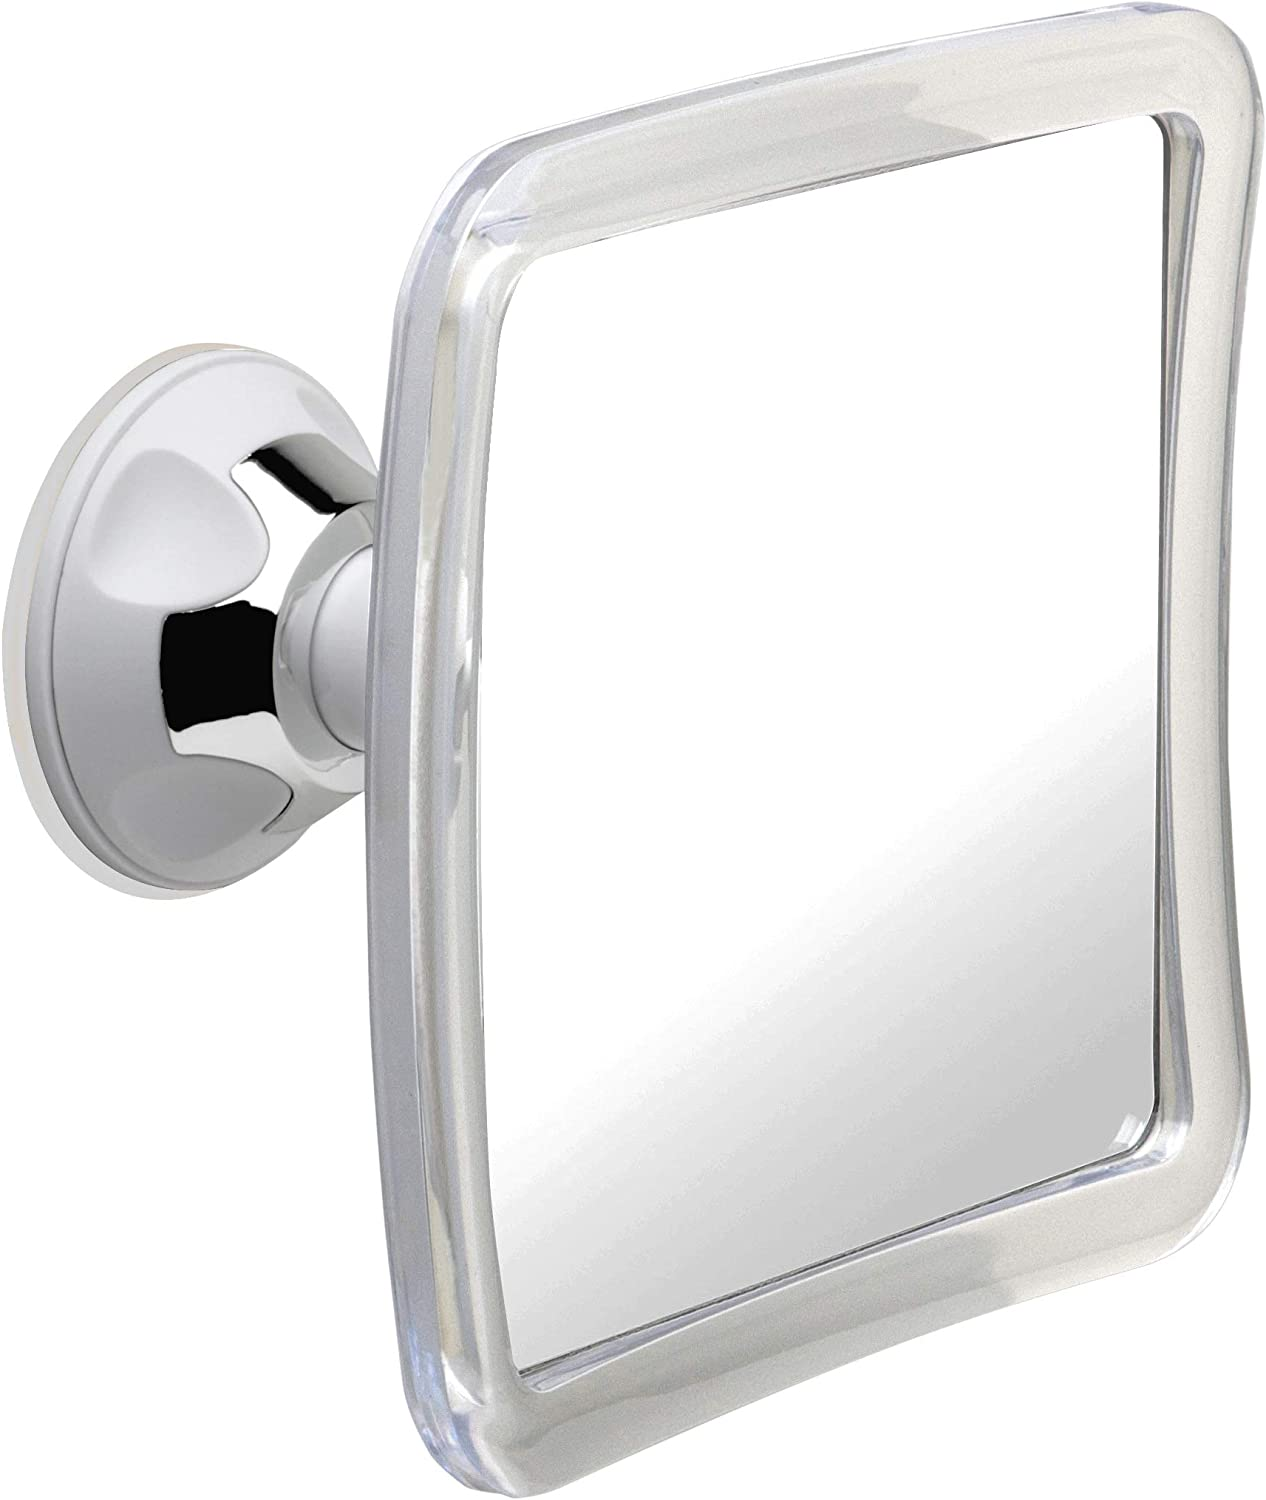 Mirrorvana Fogless Shower Mirror for Fog Free Shaving with Upgraded Suction-Cup, Shatterproof Surface and 360° Swivel, 6.3 x 6.3 Inch : Beauty